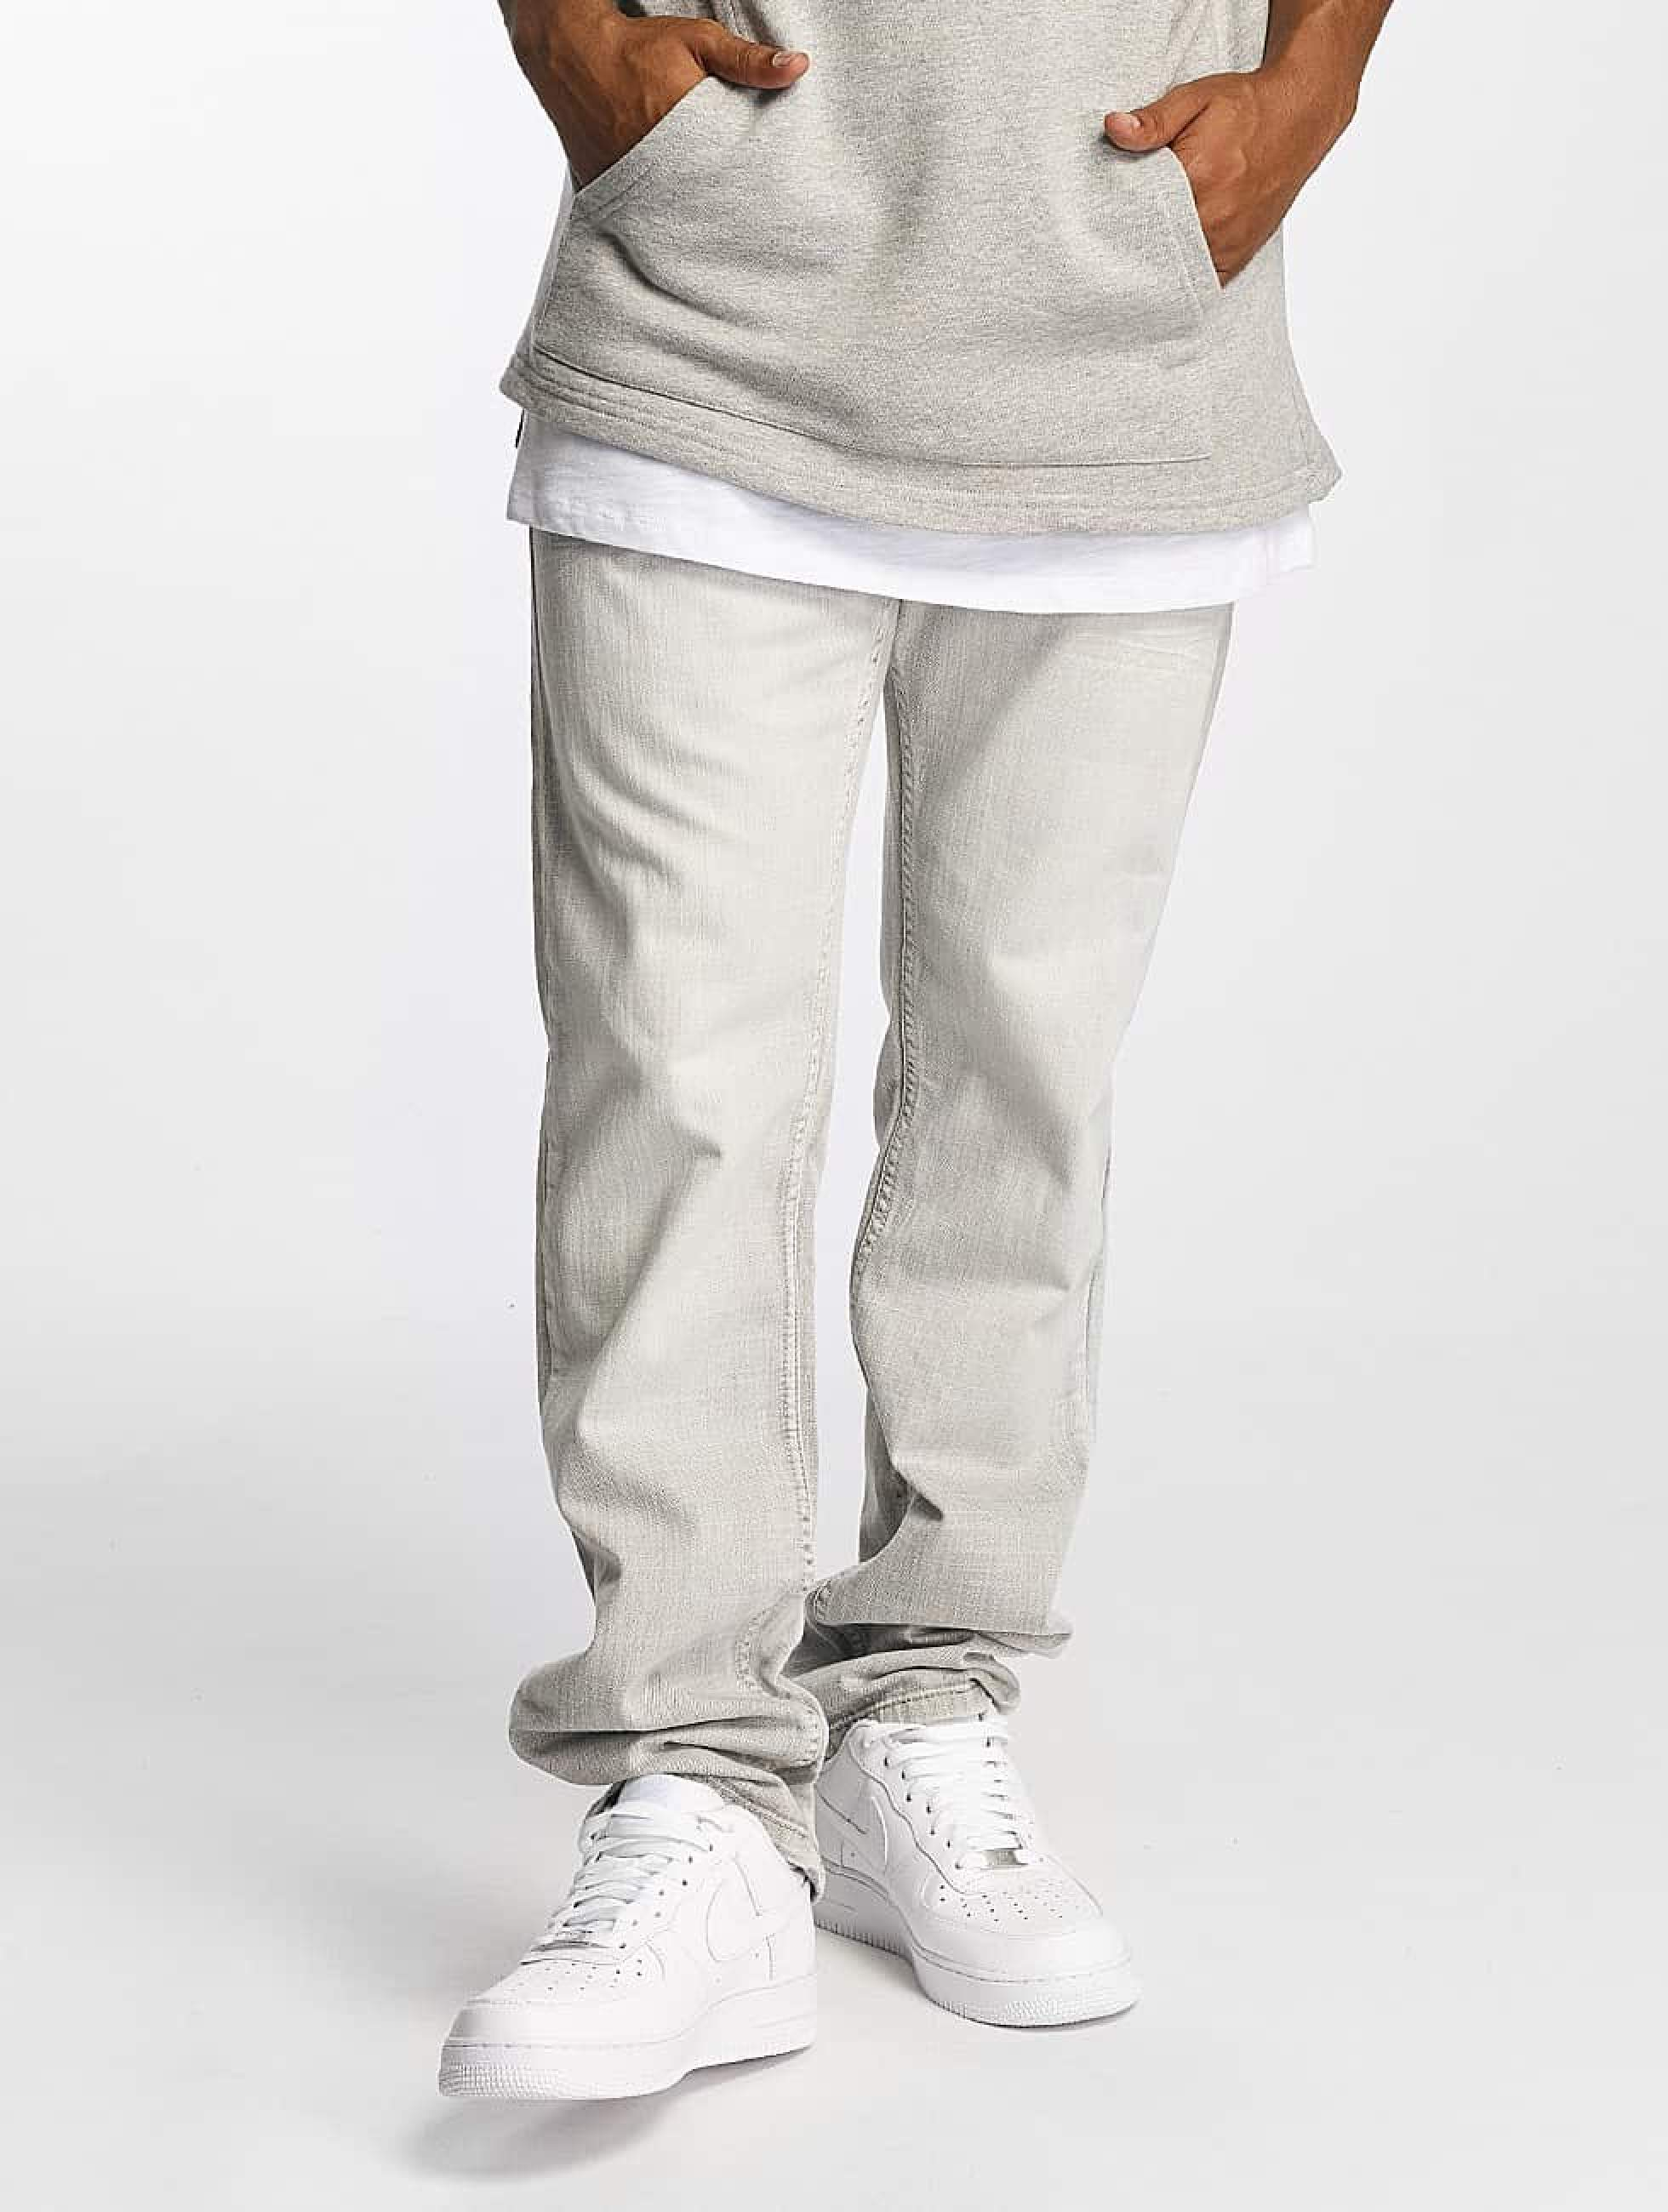 Rocawear / Straight Fit Jeans Relax in grey W 34